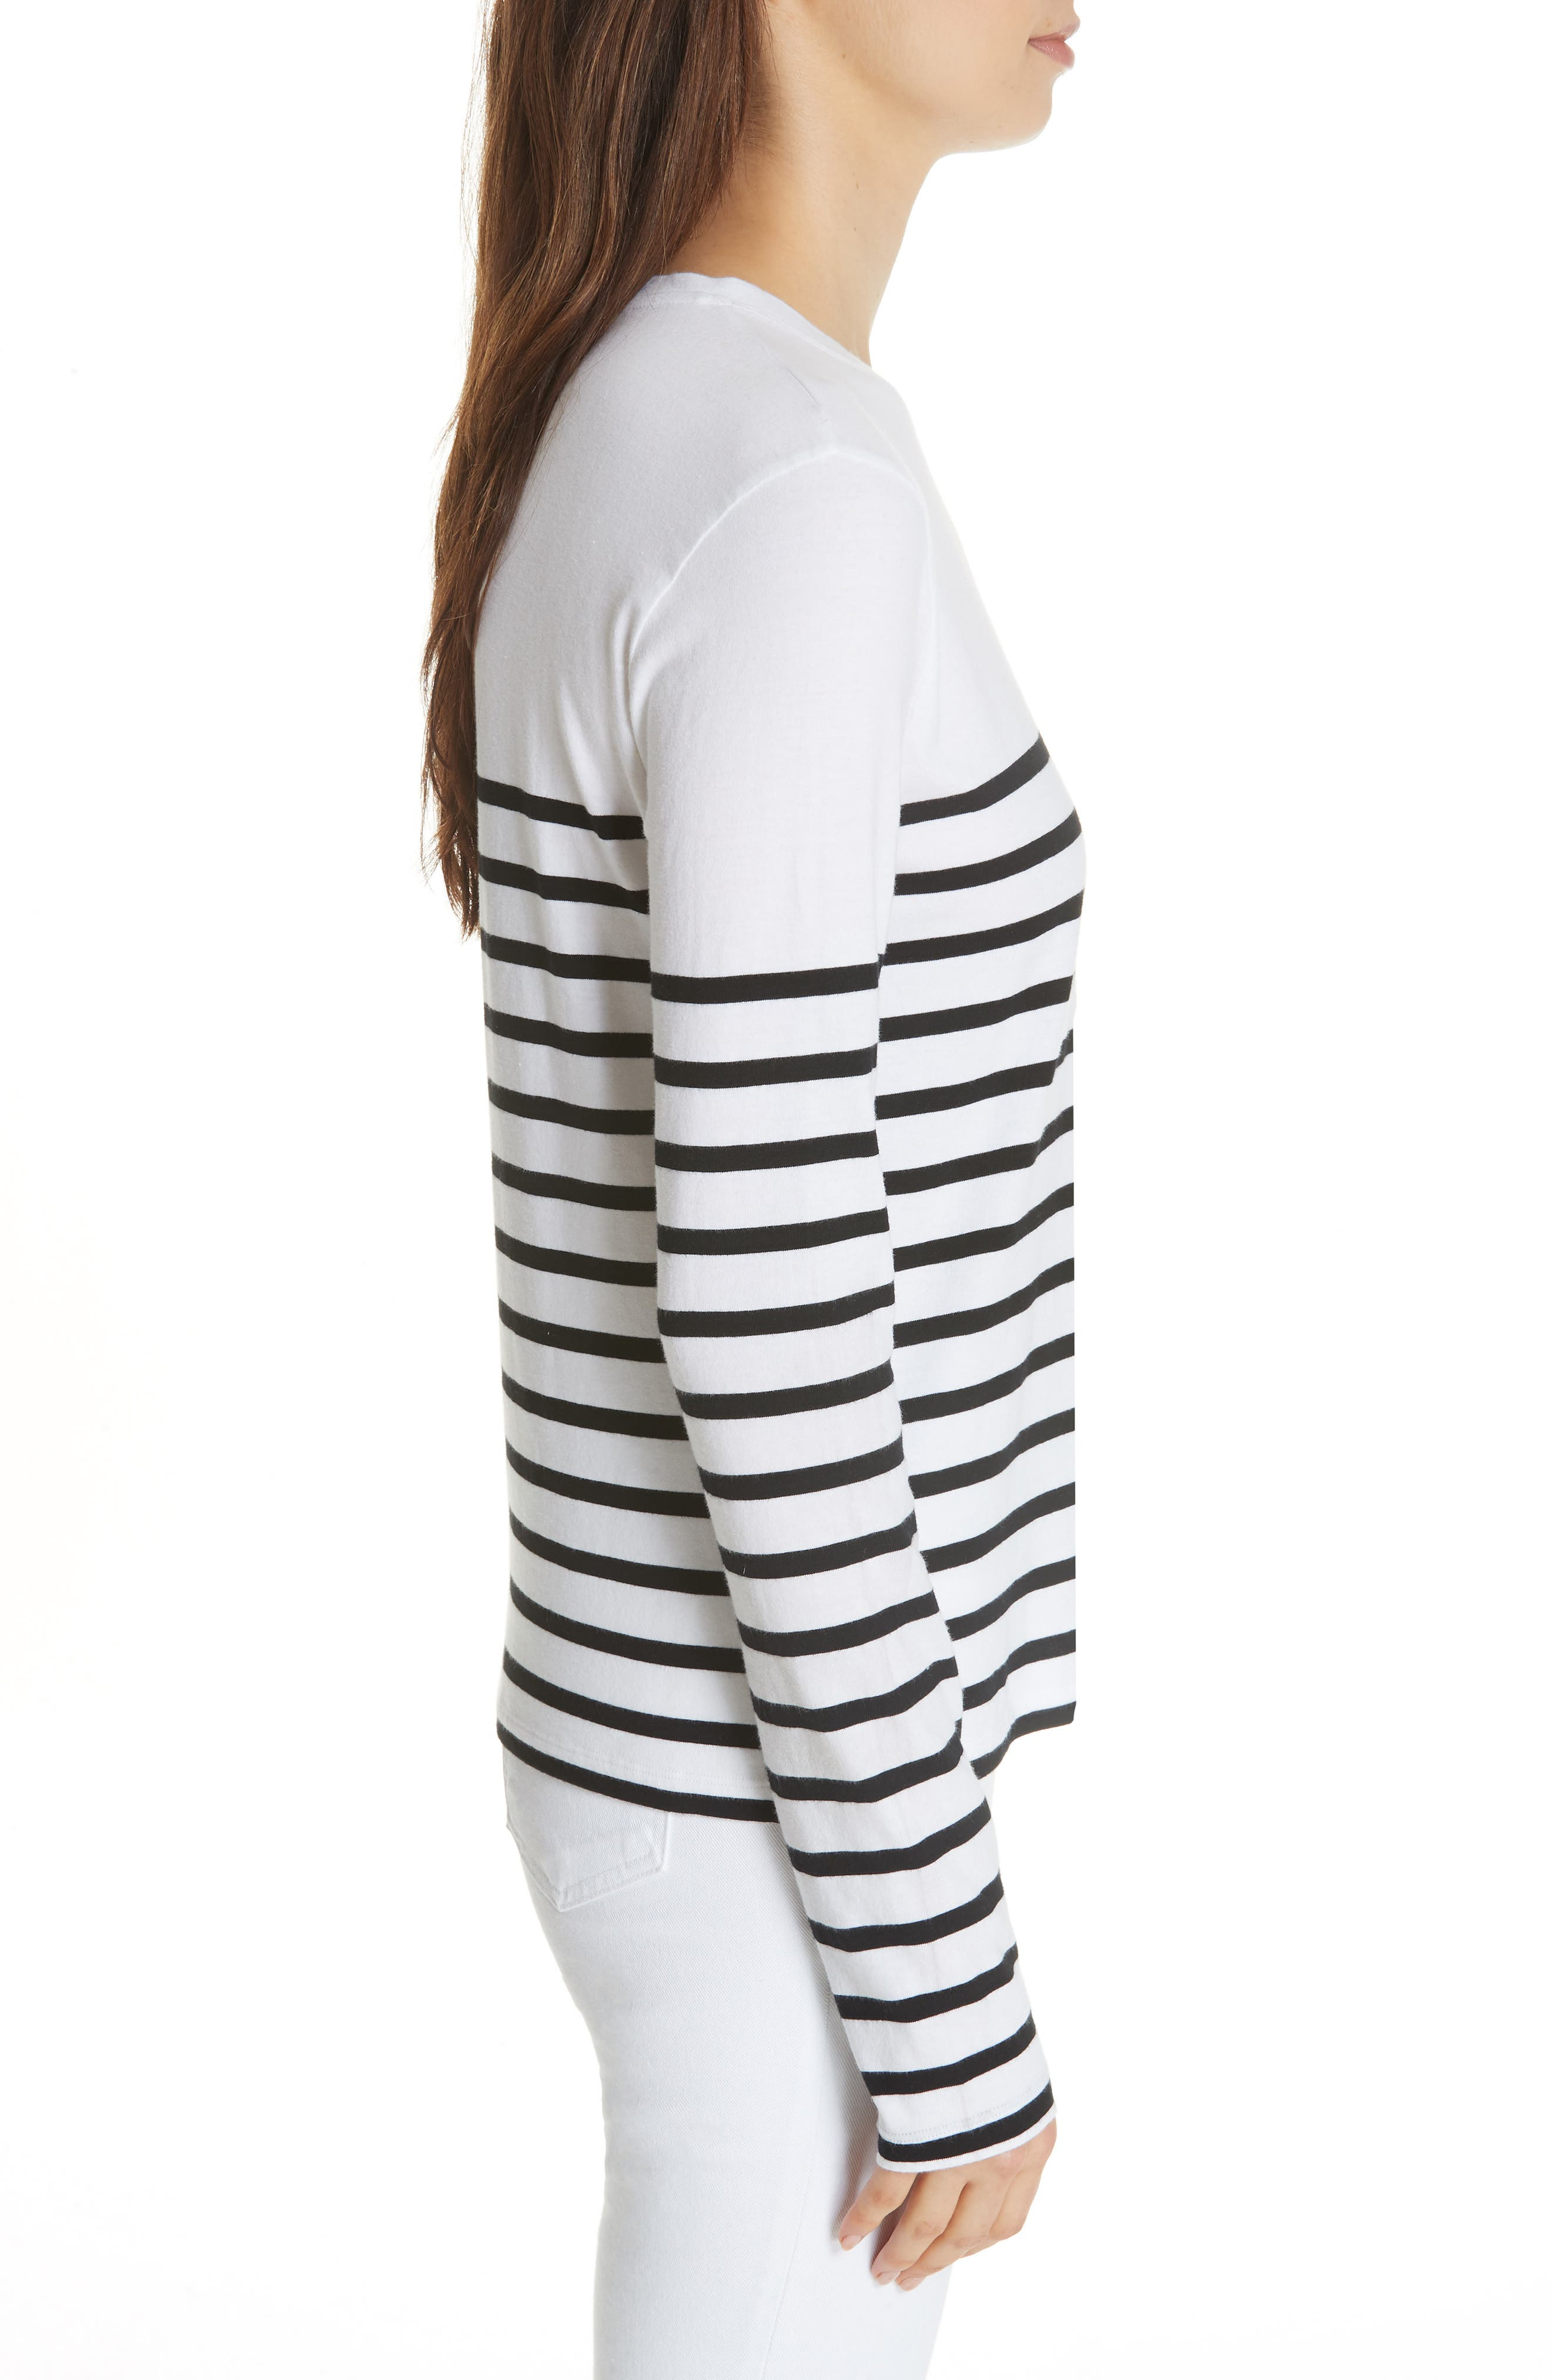 Lean Lines Tee,                             Alternate thumbnail 3, color,                             WHITE AND BLACK STRIPE